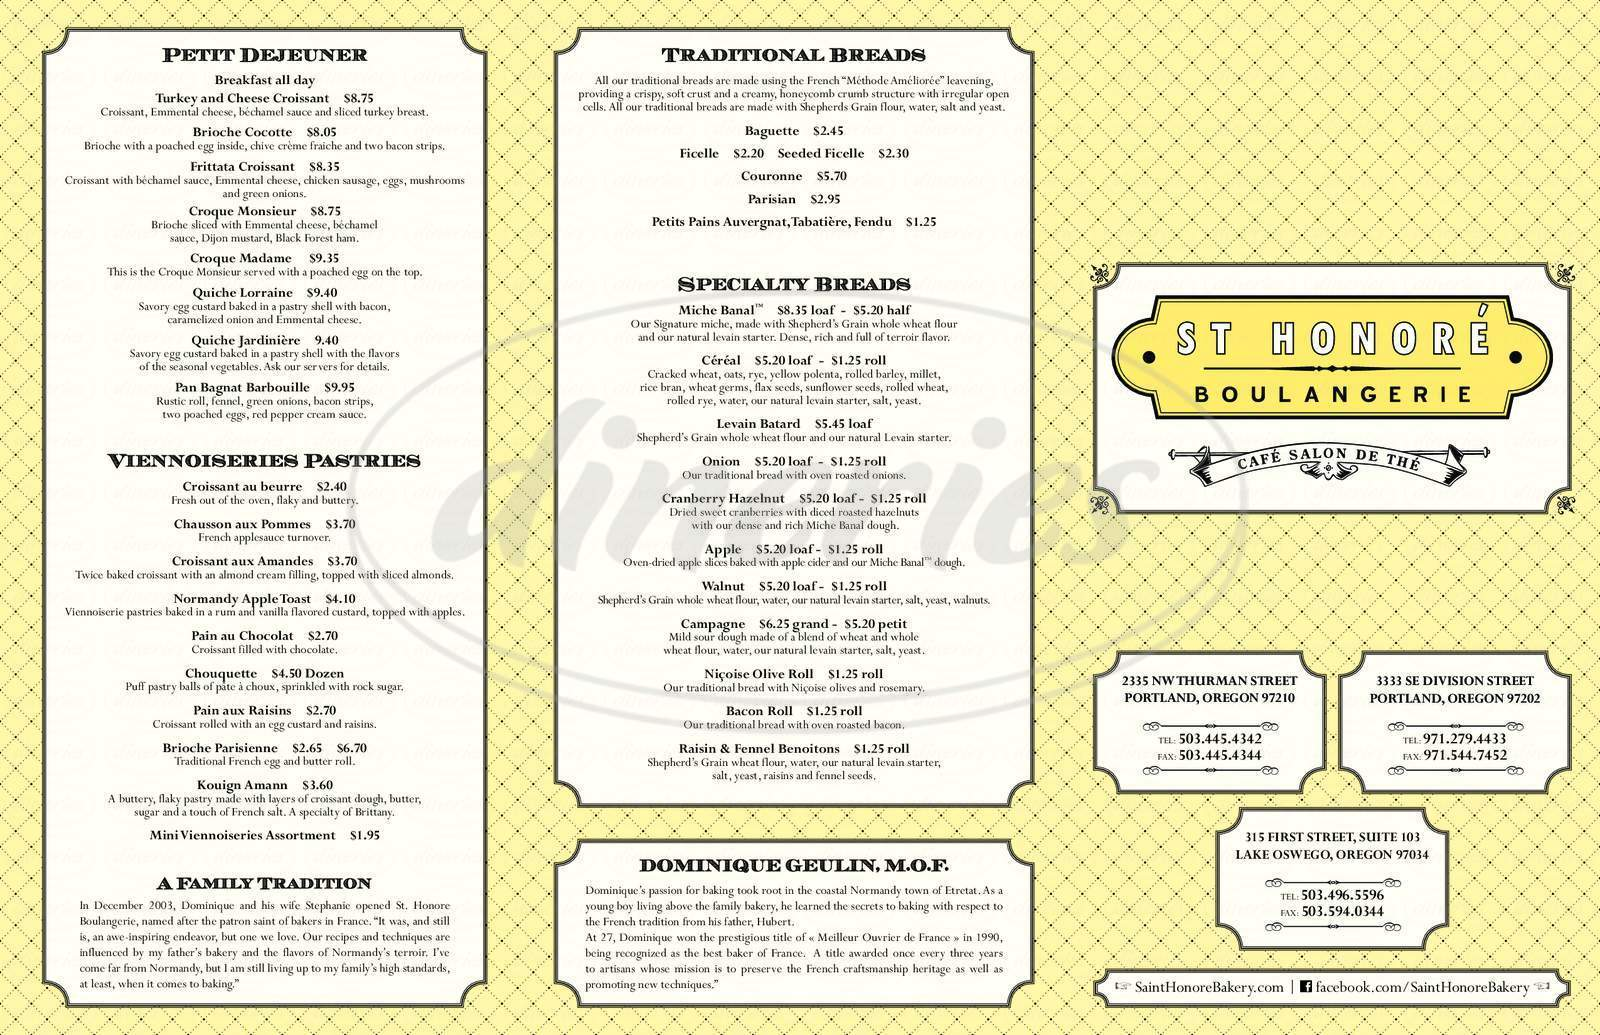 menu for St. Honore Boulangerie